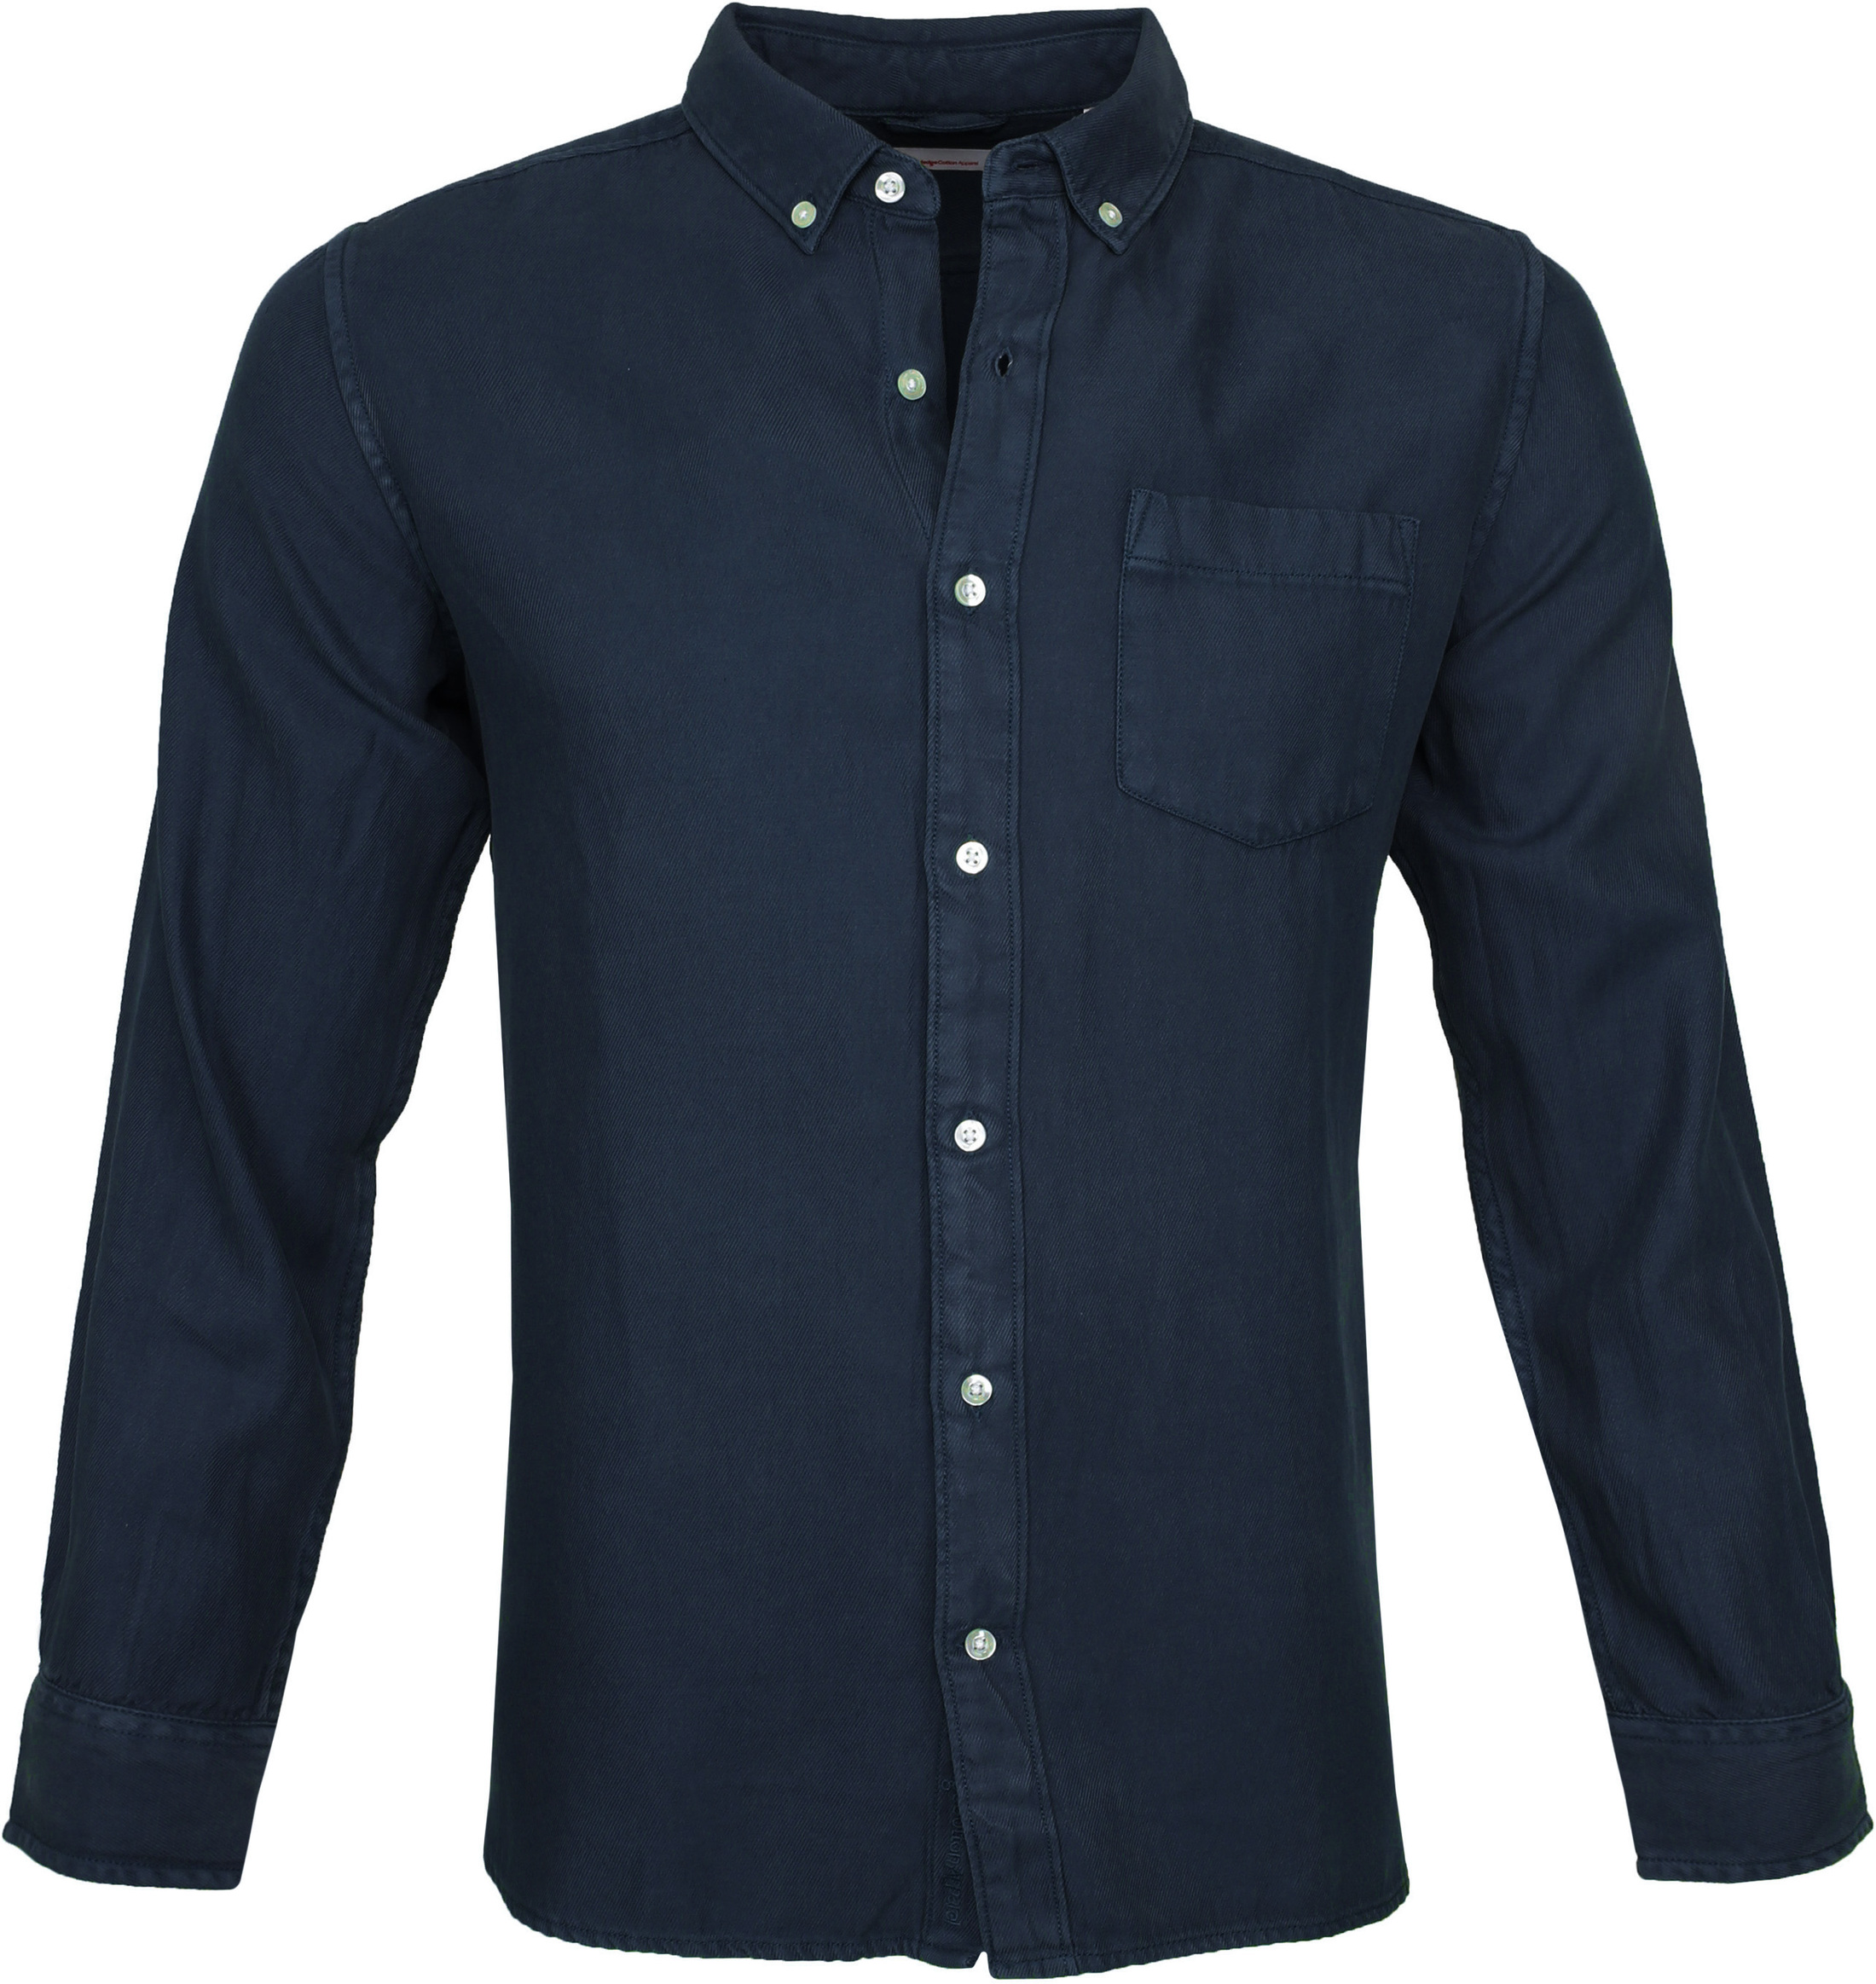 KnowledgeCotton Apparel Shirt Twill Navy photo 0